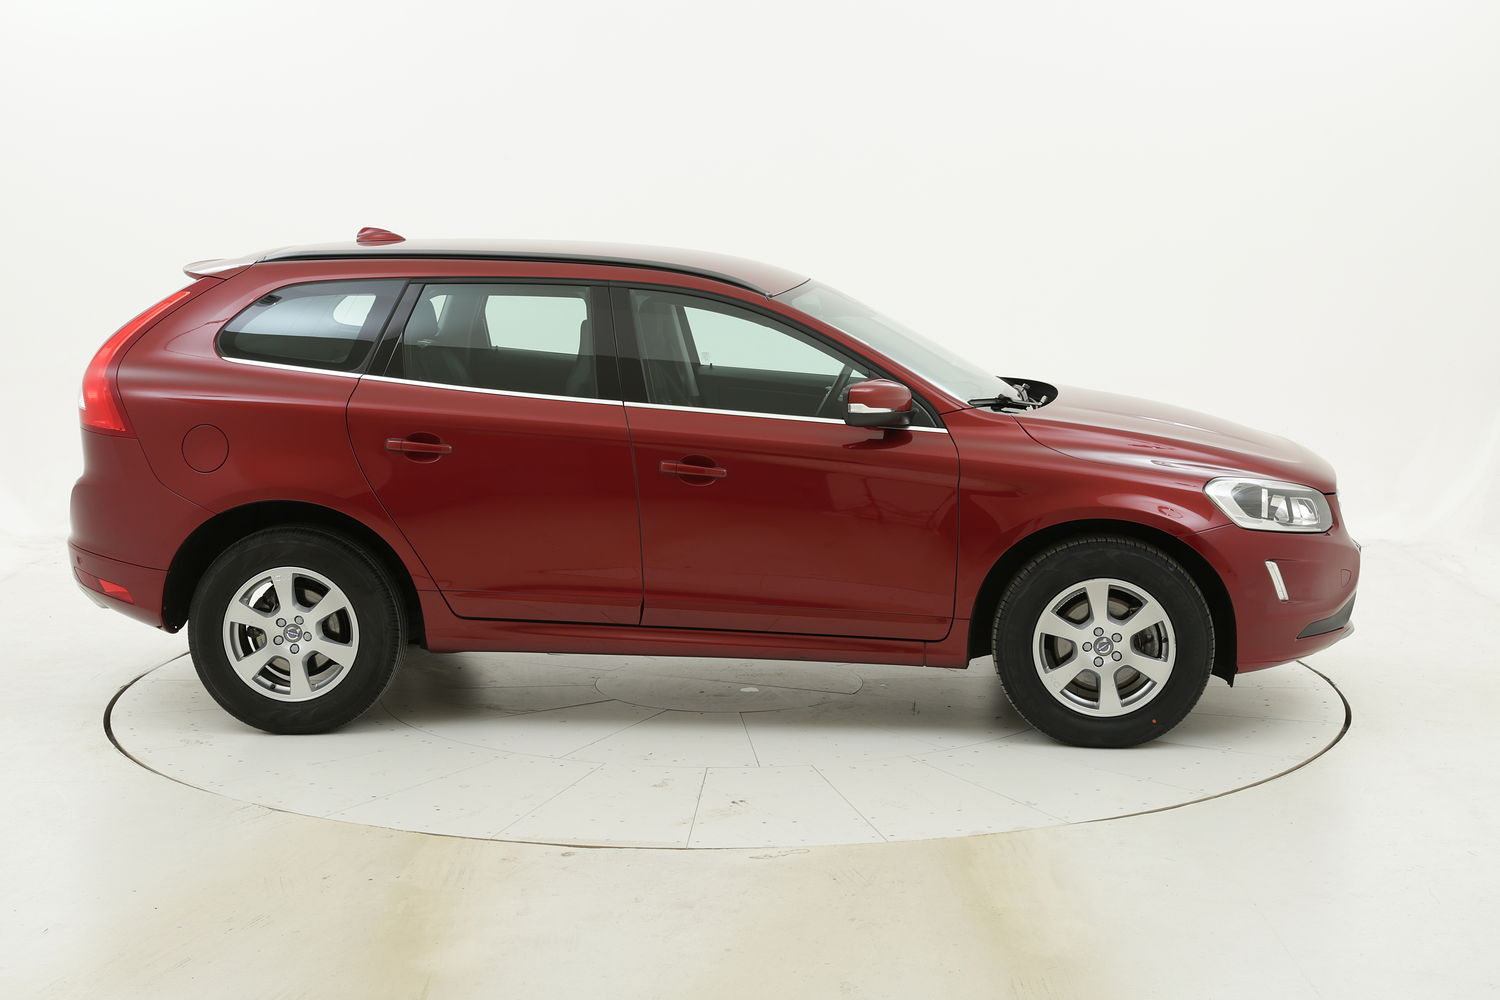 Volvo XC60 D4 Business Plus Geartronic AWD usata del 2017 con 116.139 km